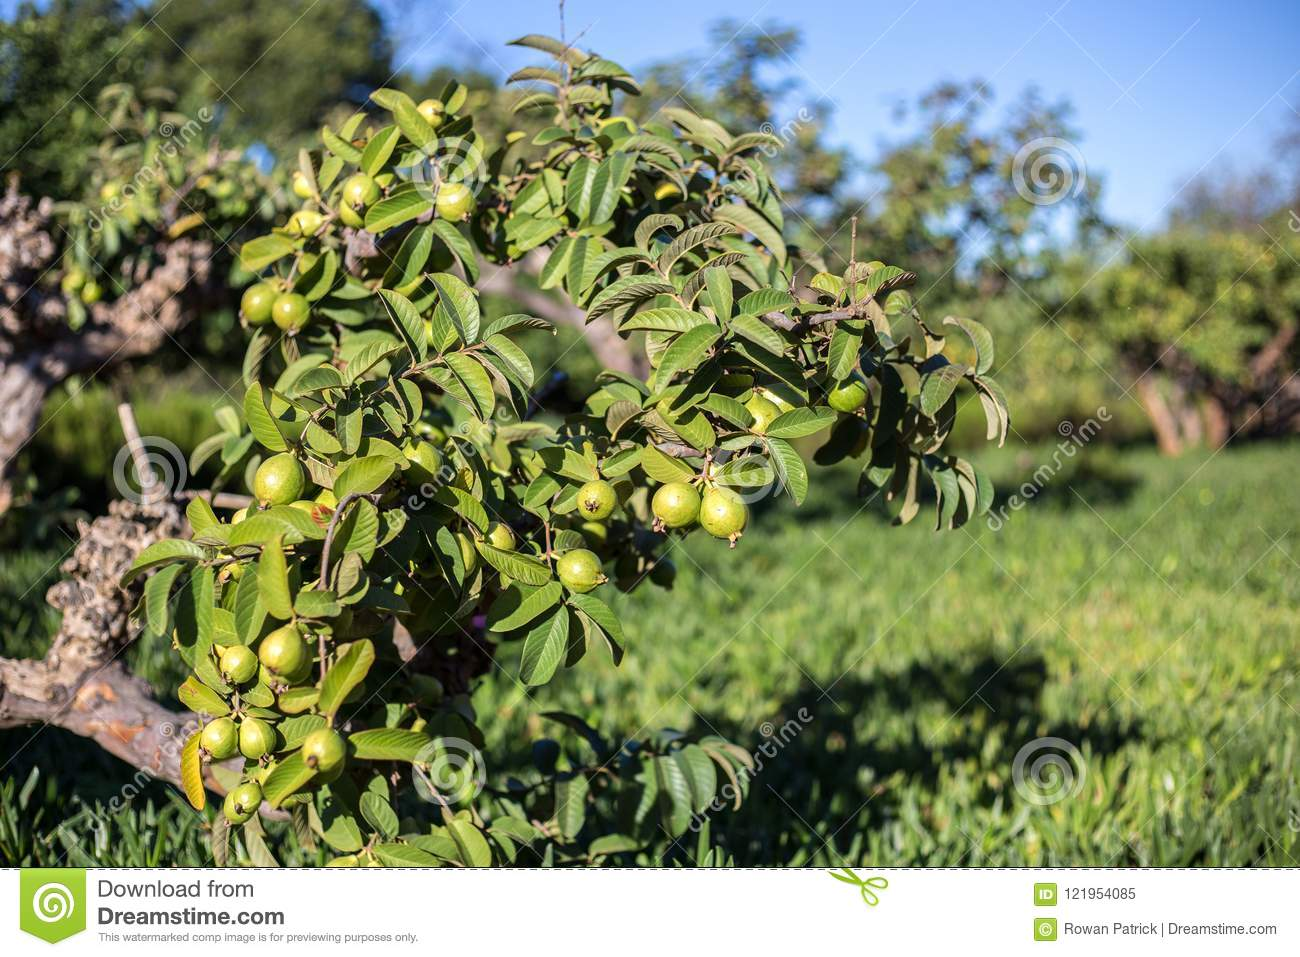 Guave Tee  Top Guave Tee With Guave Tee  Psidium Cattleianum